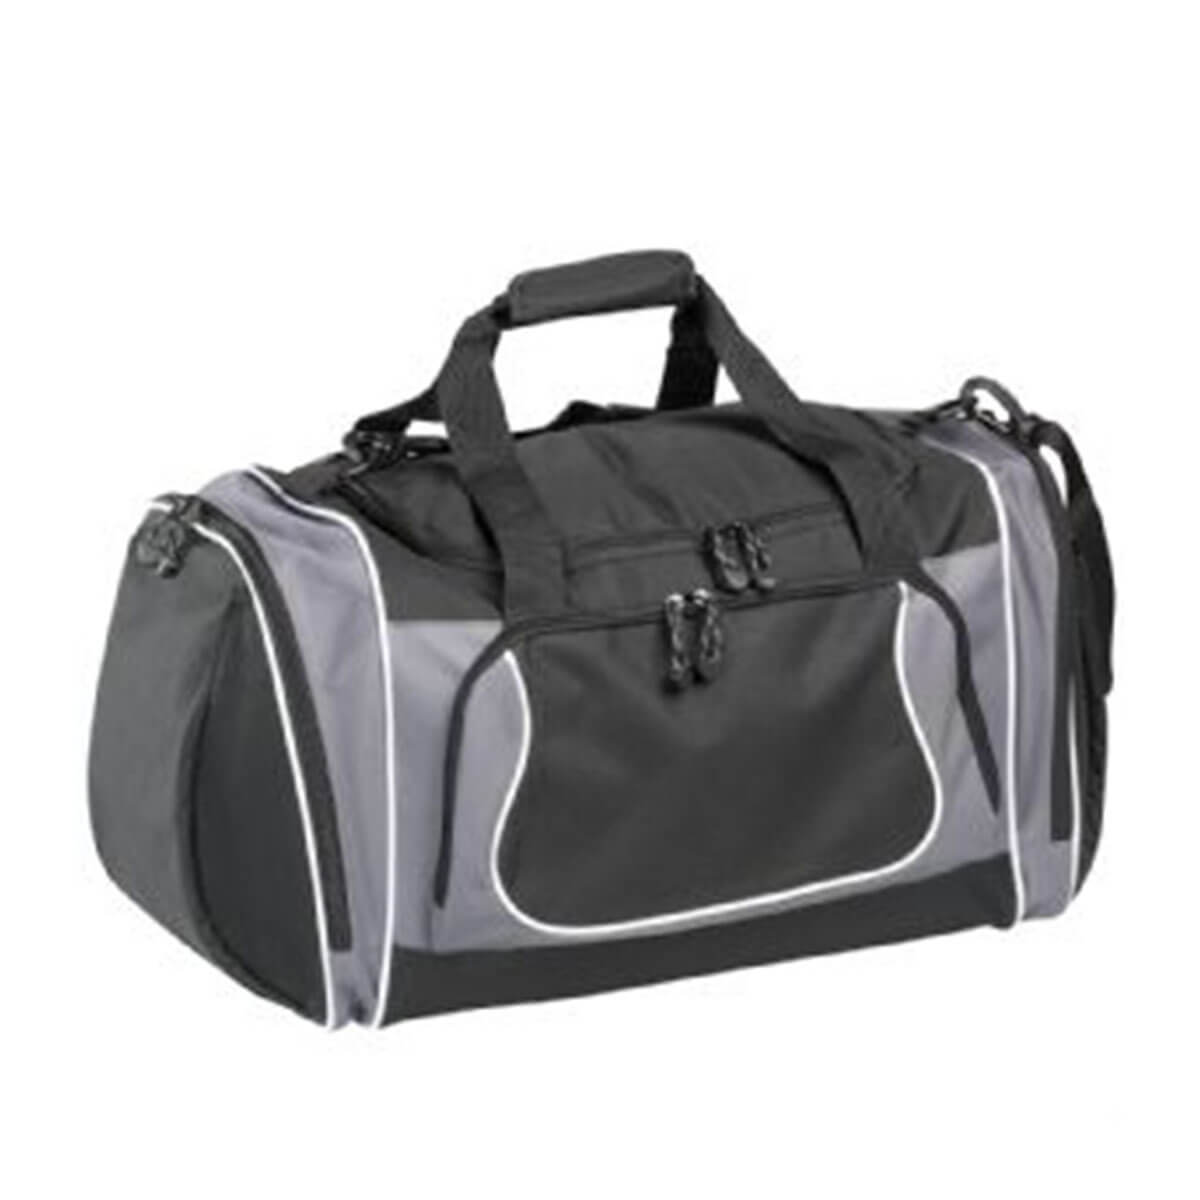 Coil Sports Duffel-Black and Grey with White Trim.